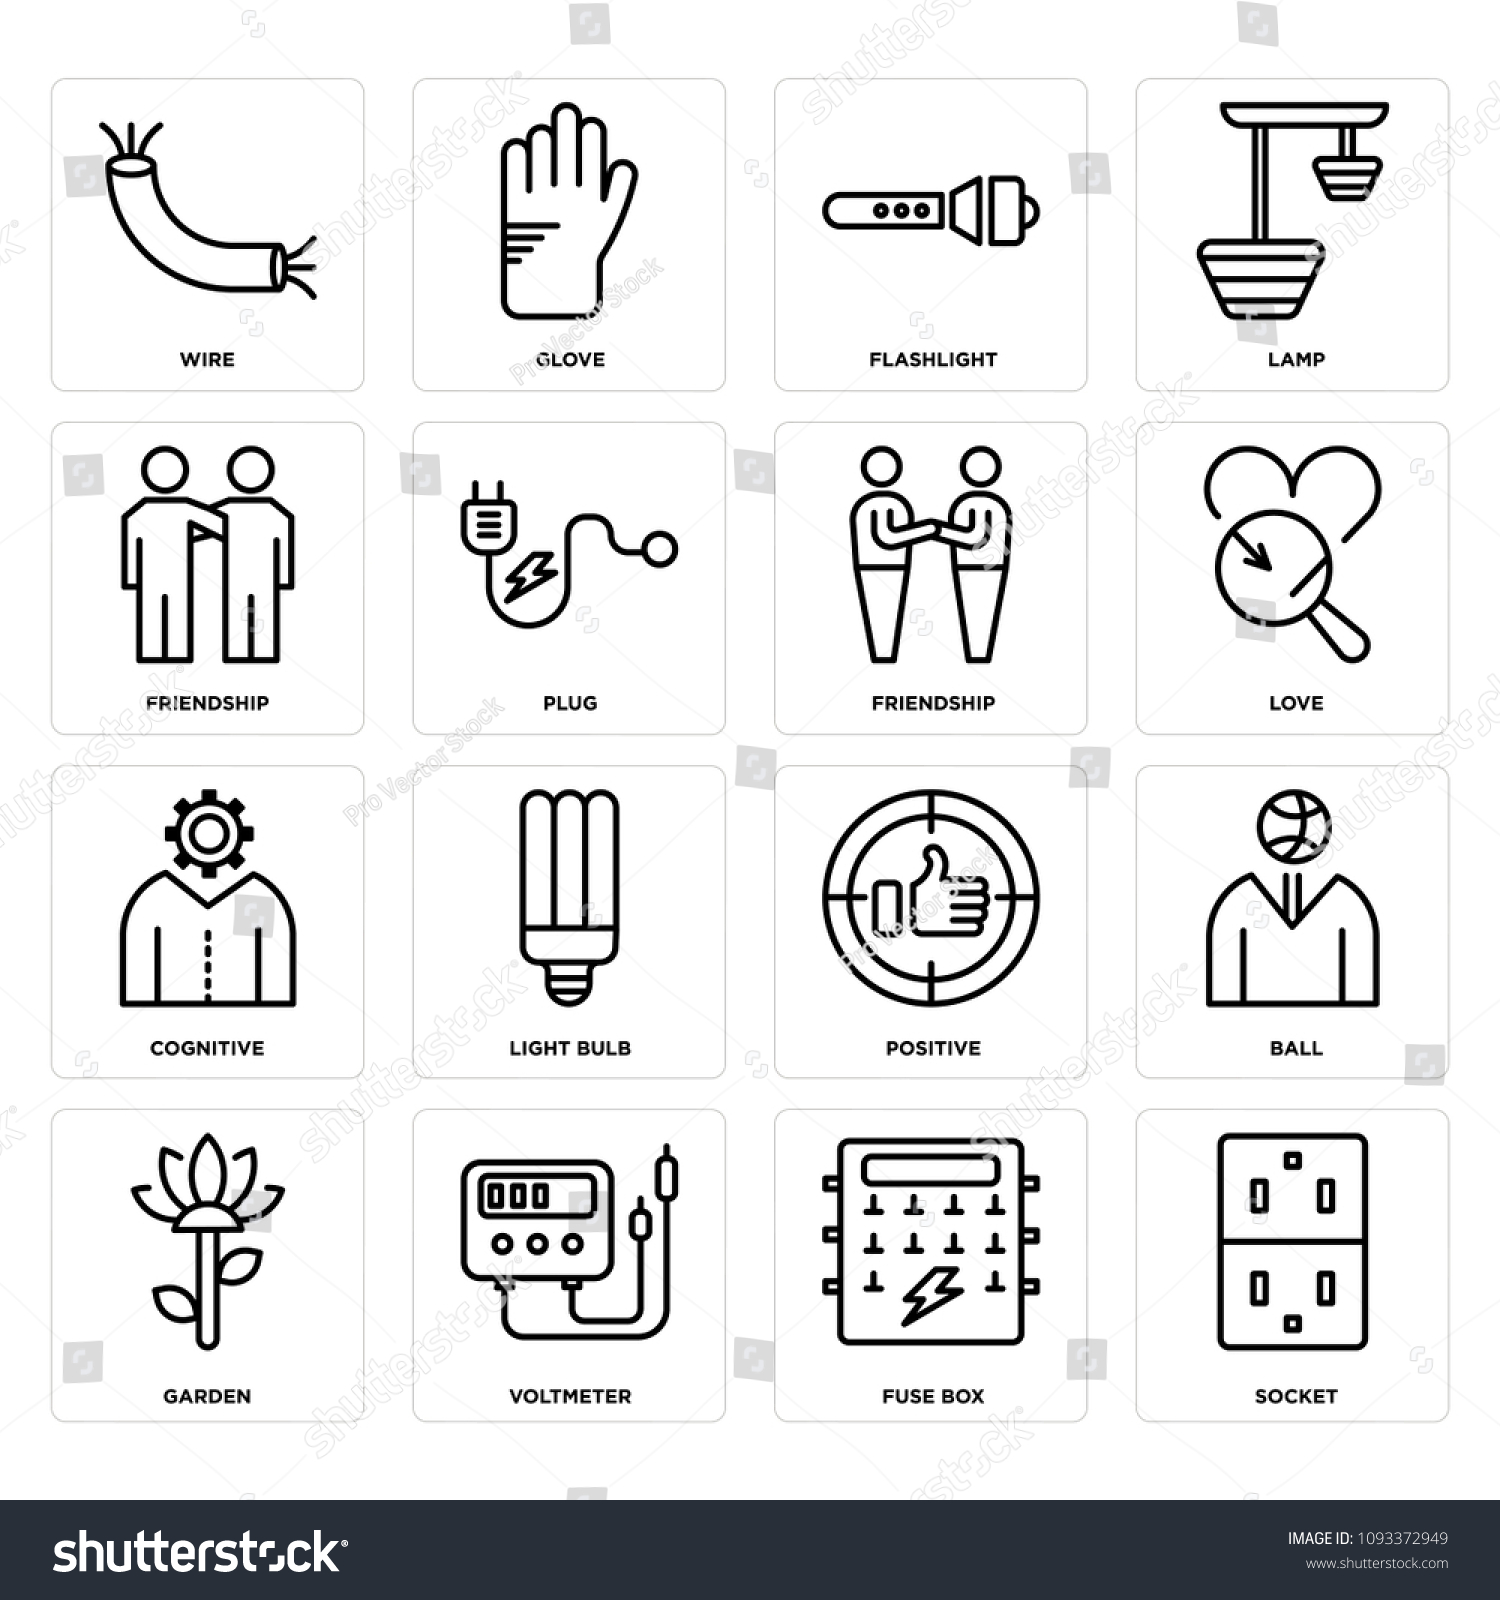 Set Of 16 simple editable icons such as Socket, Fuse box, Voltmeter, Garden